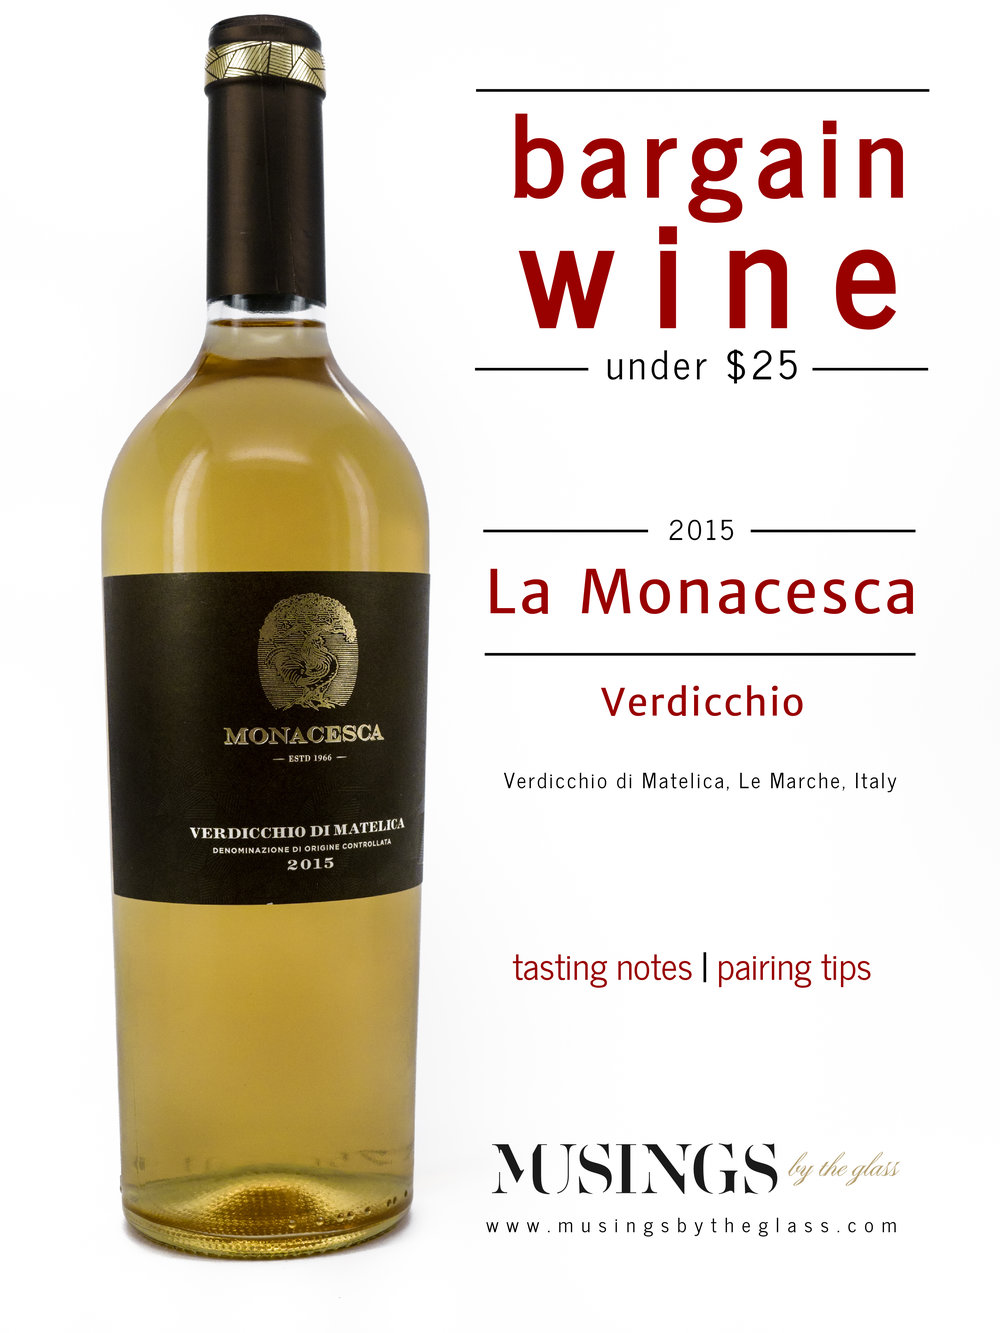 Musings by the Glass - Bargain Wines - Verdicchio from Monacesca, Verdicchio di Matelica, La Marche, Italy